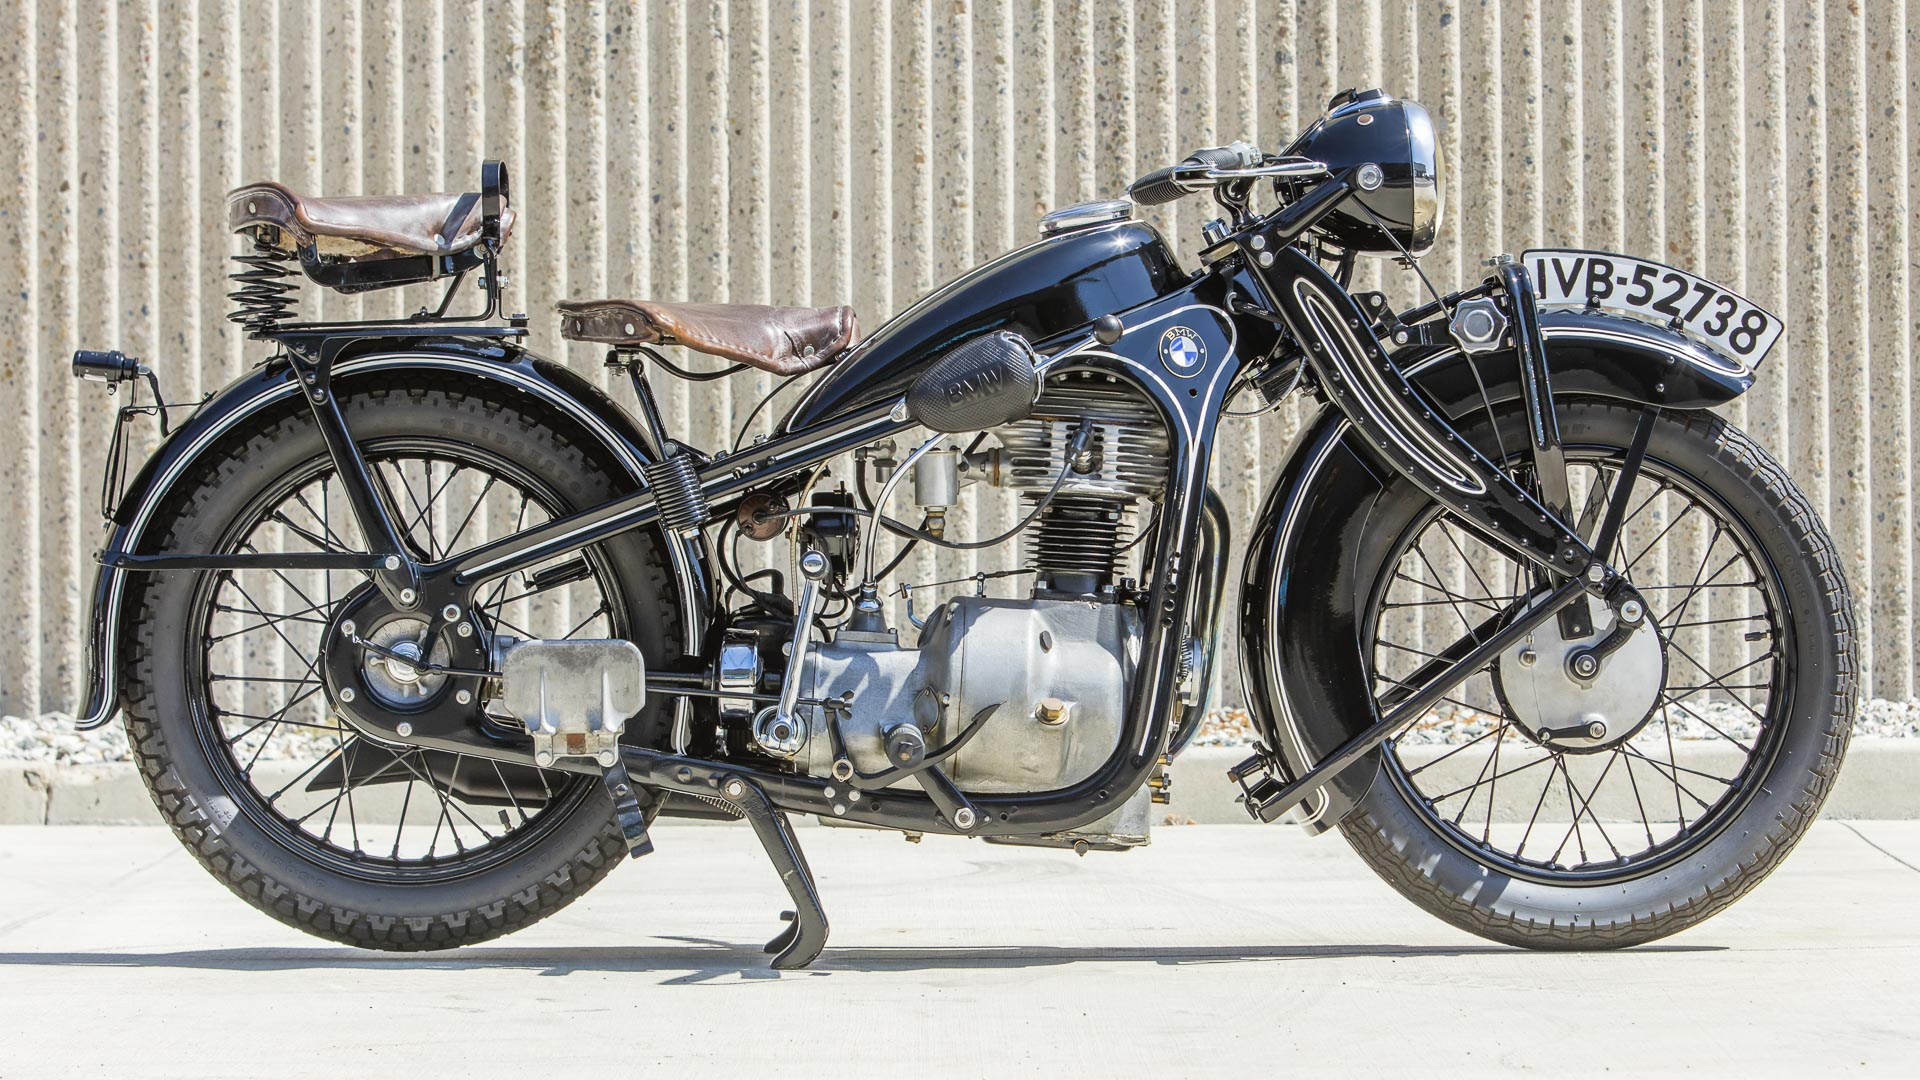 Vintage BMW Motorcycles Auction - For Sale